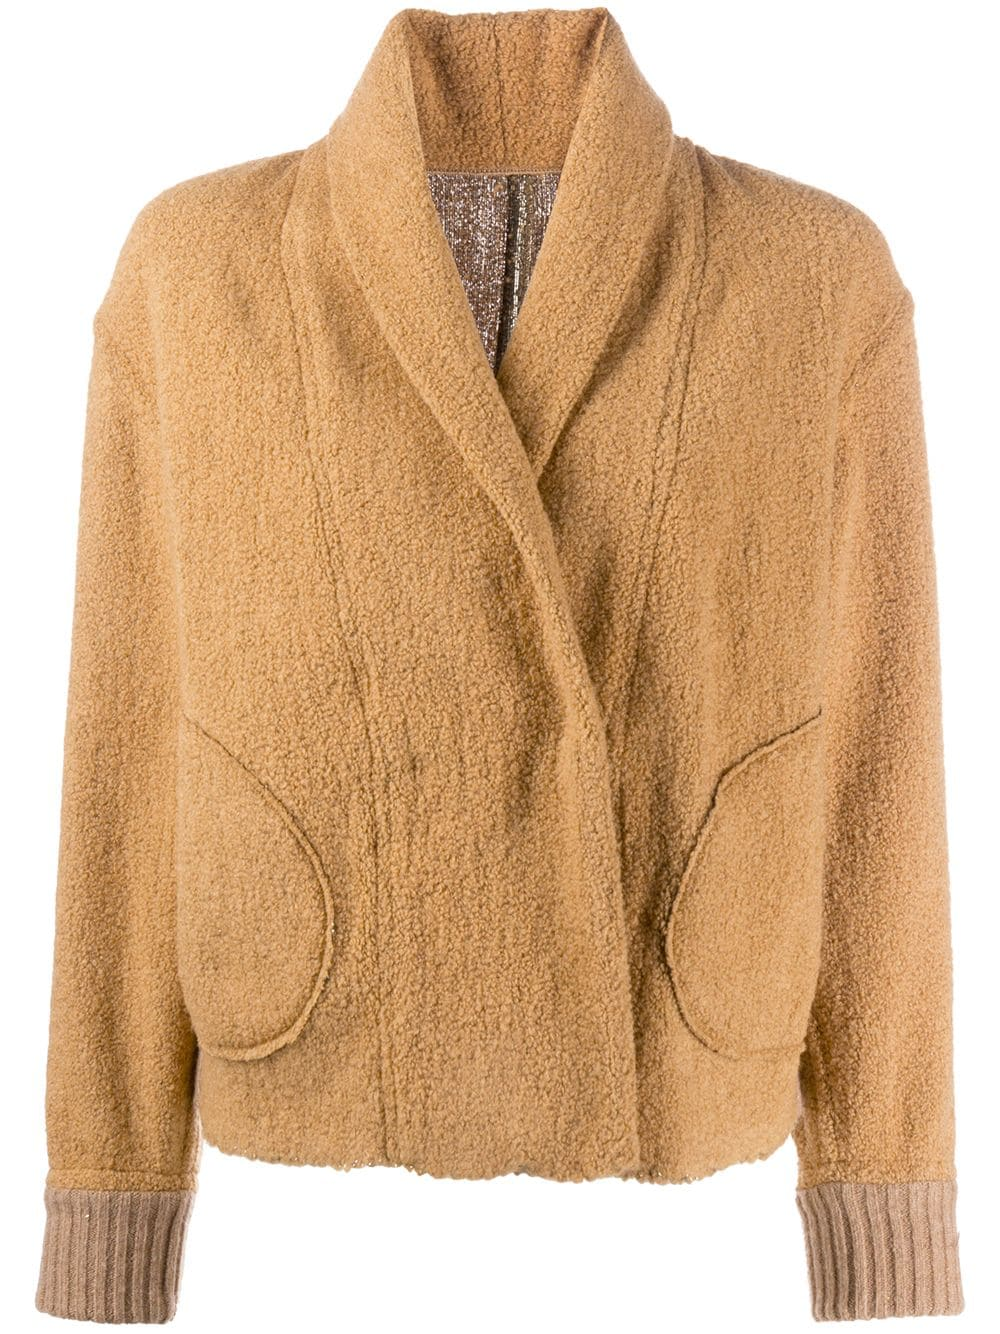 camel-coloured wool-blend reversible metallic-panel jacket featuring shawl lapels FORTE_FORTE |  | 7501CAMMELLO